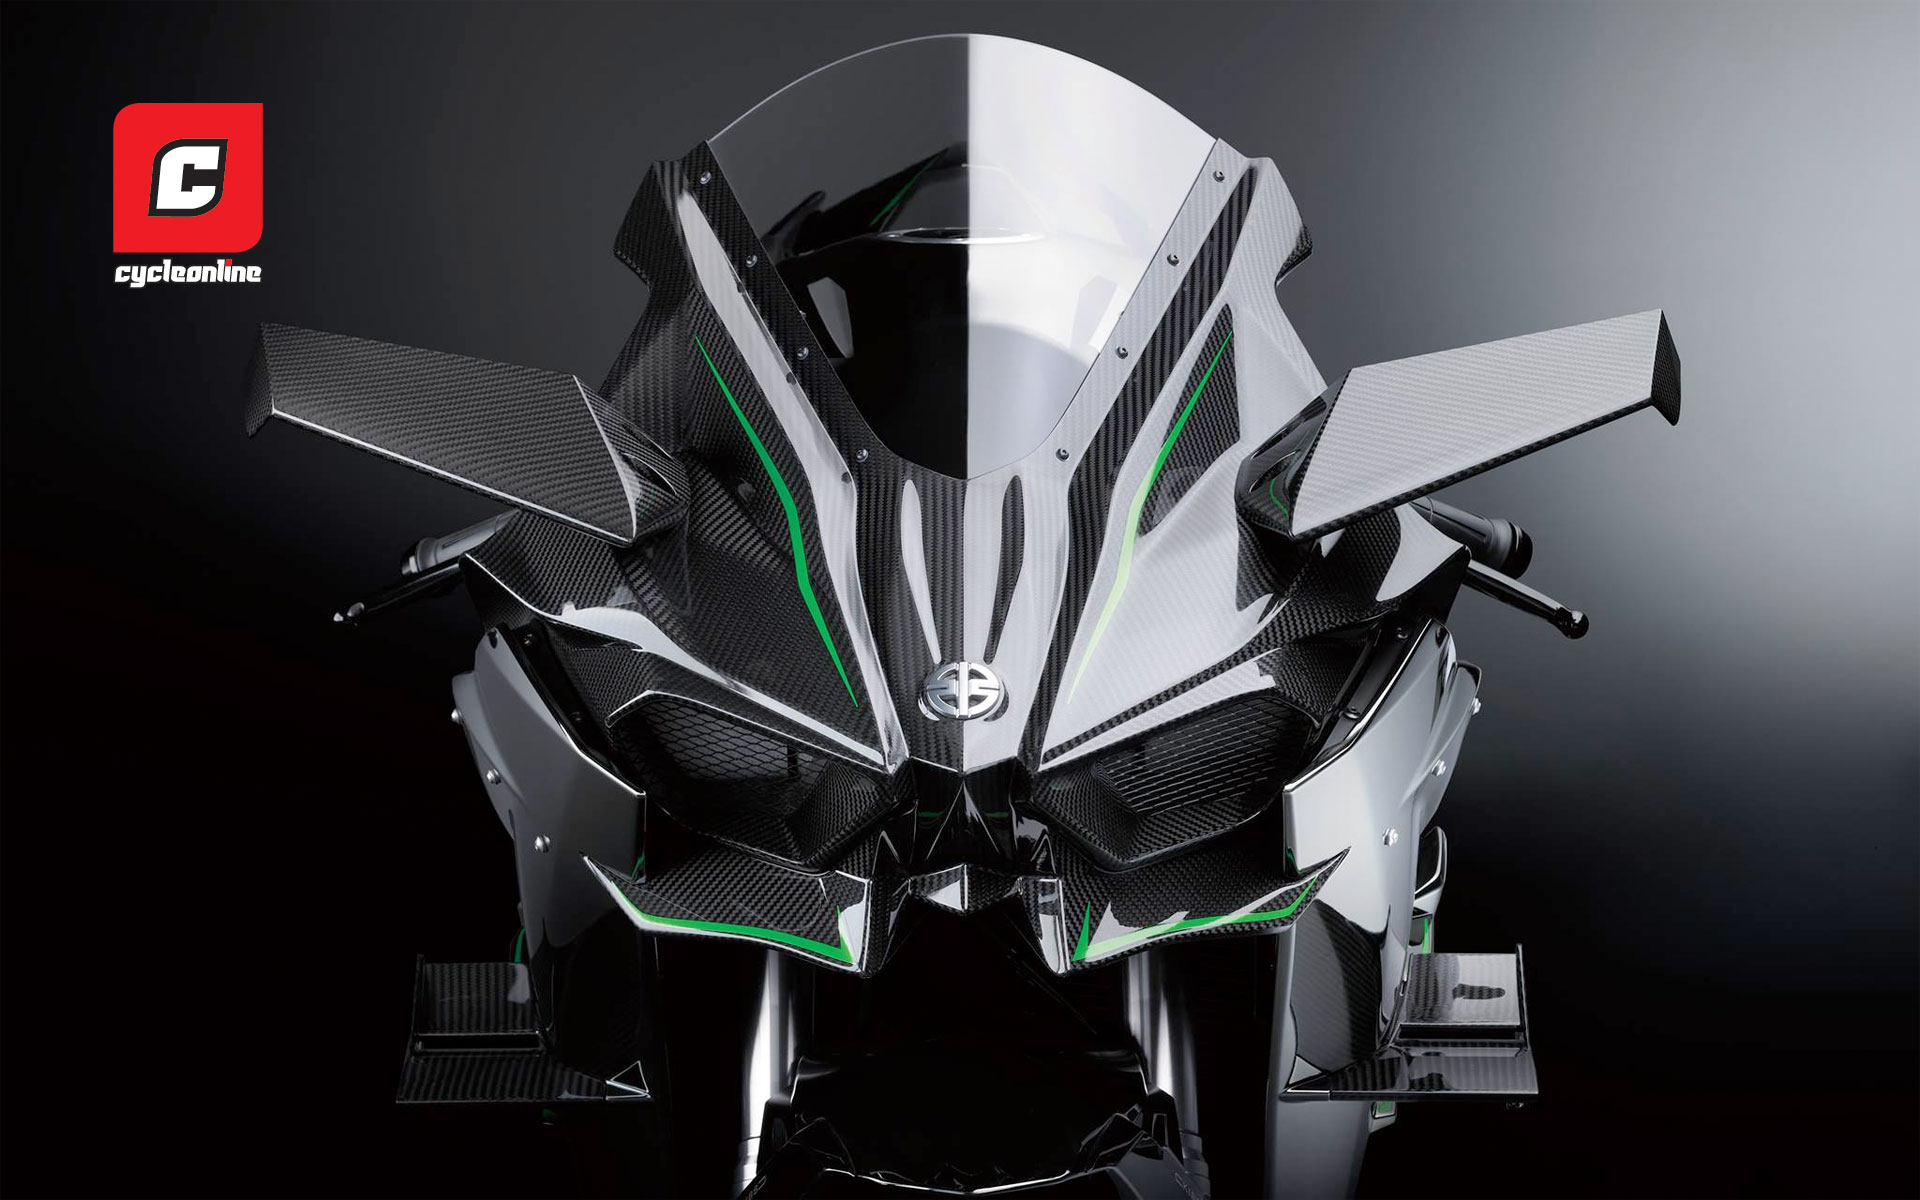 Theres Been A Stack Of Hype Surrounding Kawasakis Ninja H2 Last Night Unveiled In Track Trim As The H2R Complete With Supercharger Expected